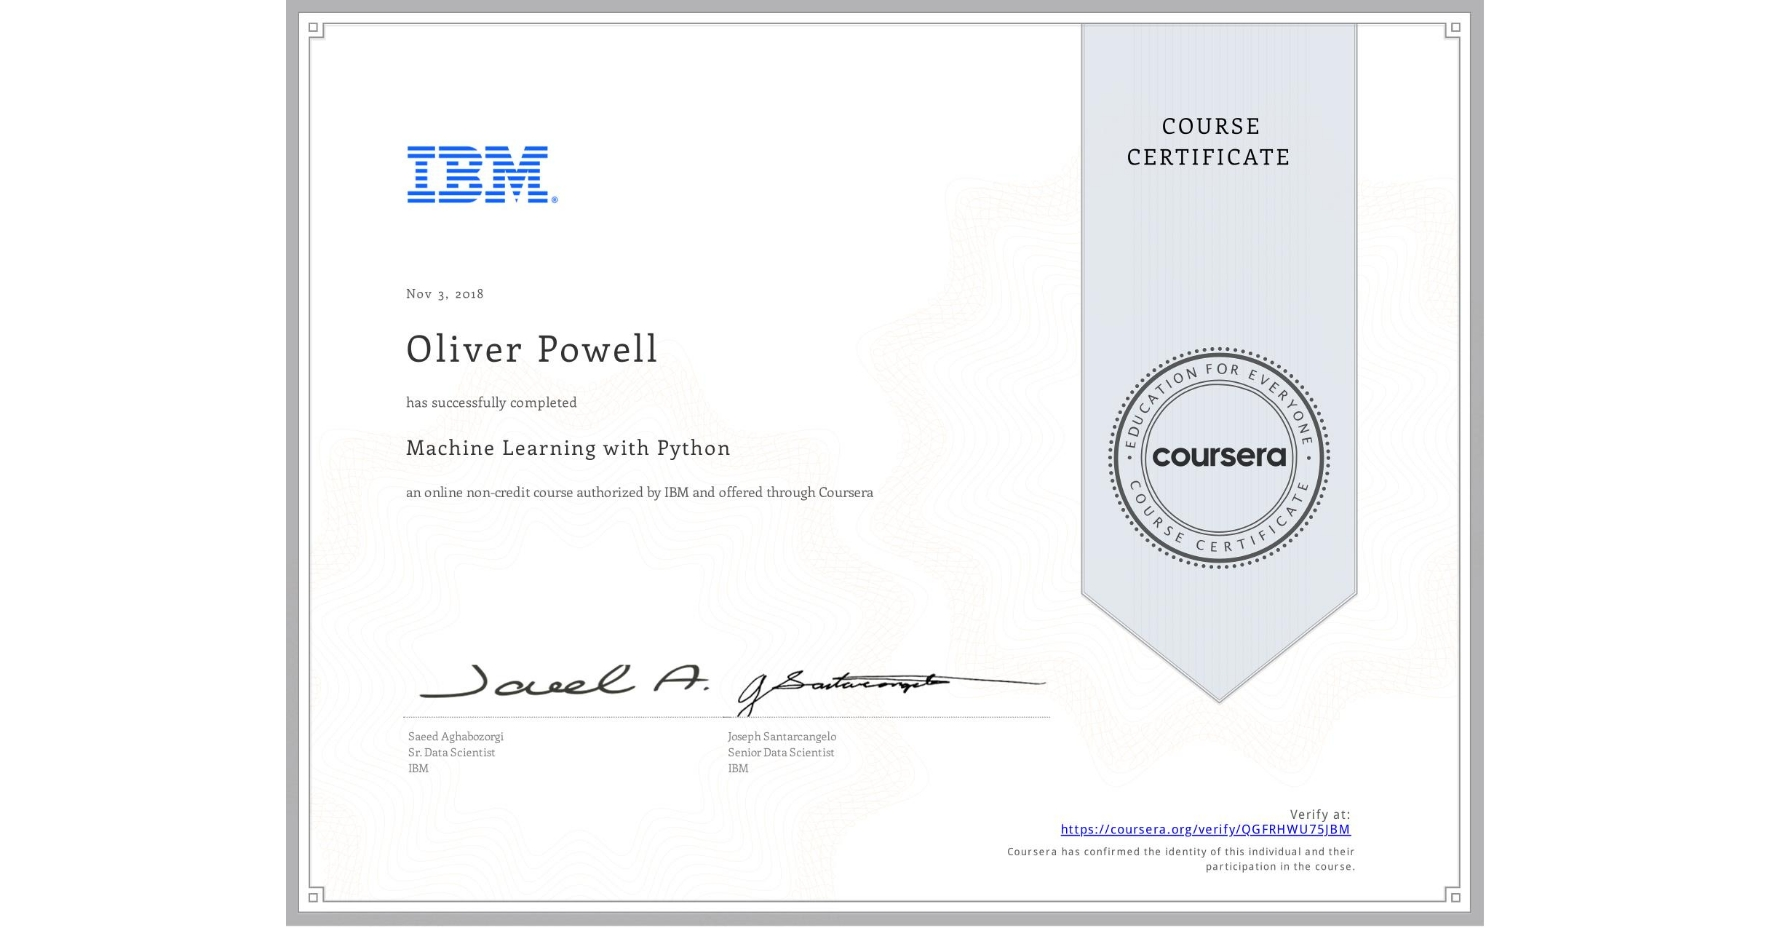 View certificate for Oliver Powell, Machine Learning with Python, an online non-credit course authorized by IBM and offered through Coursera